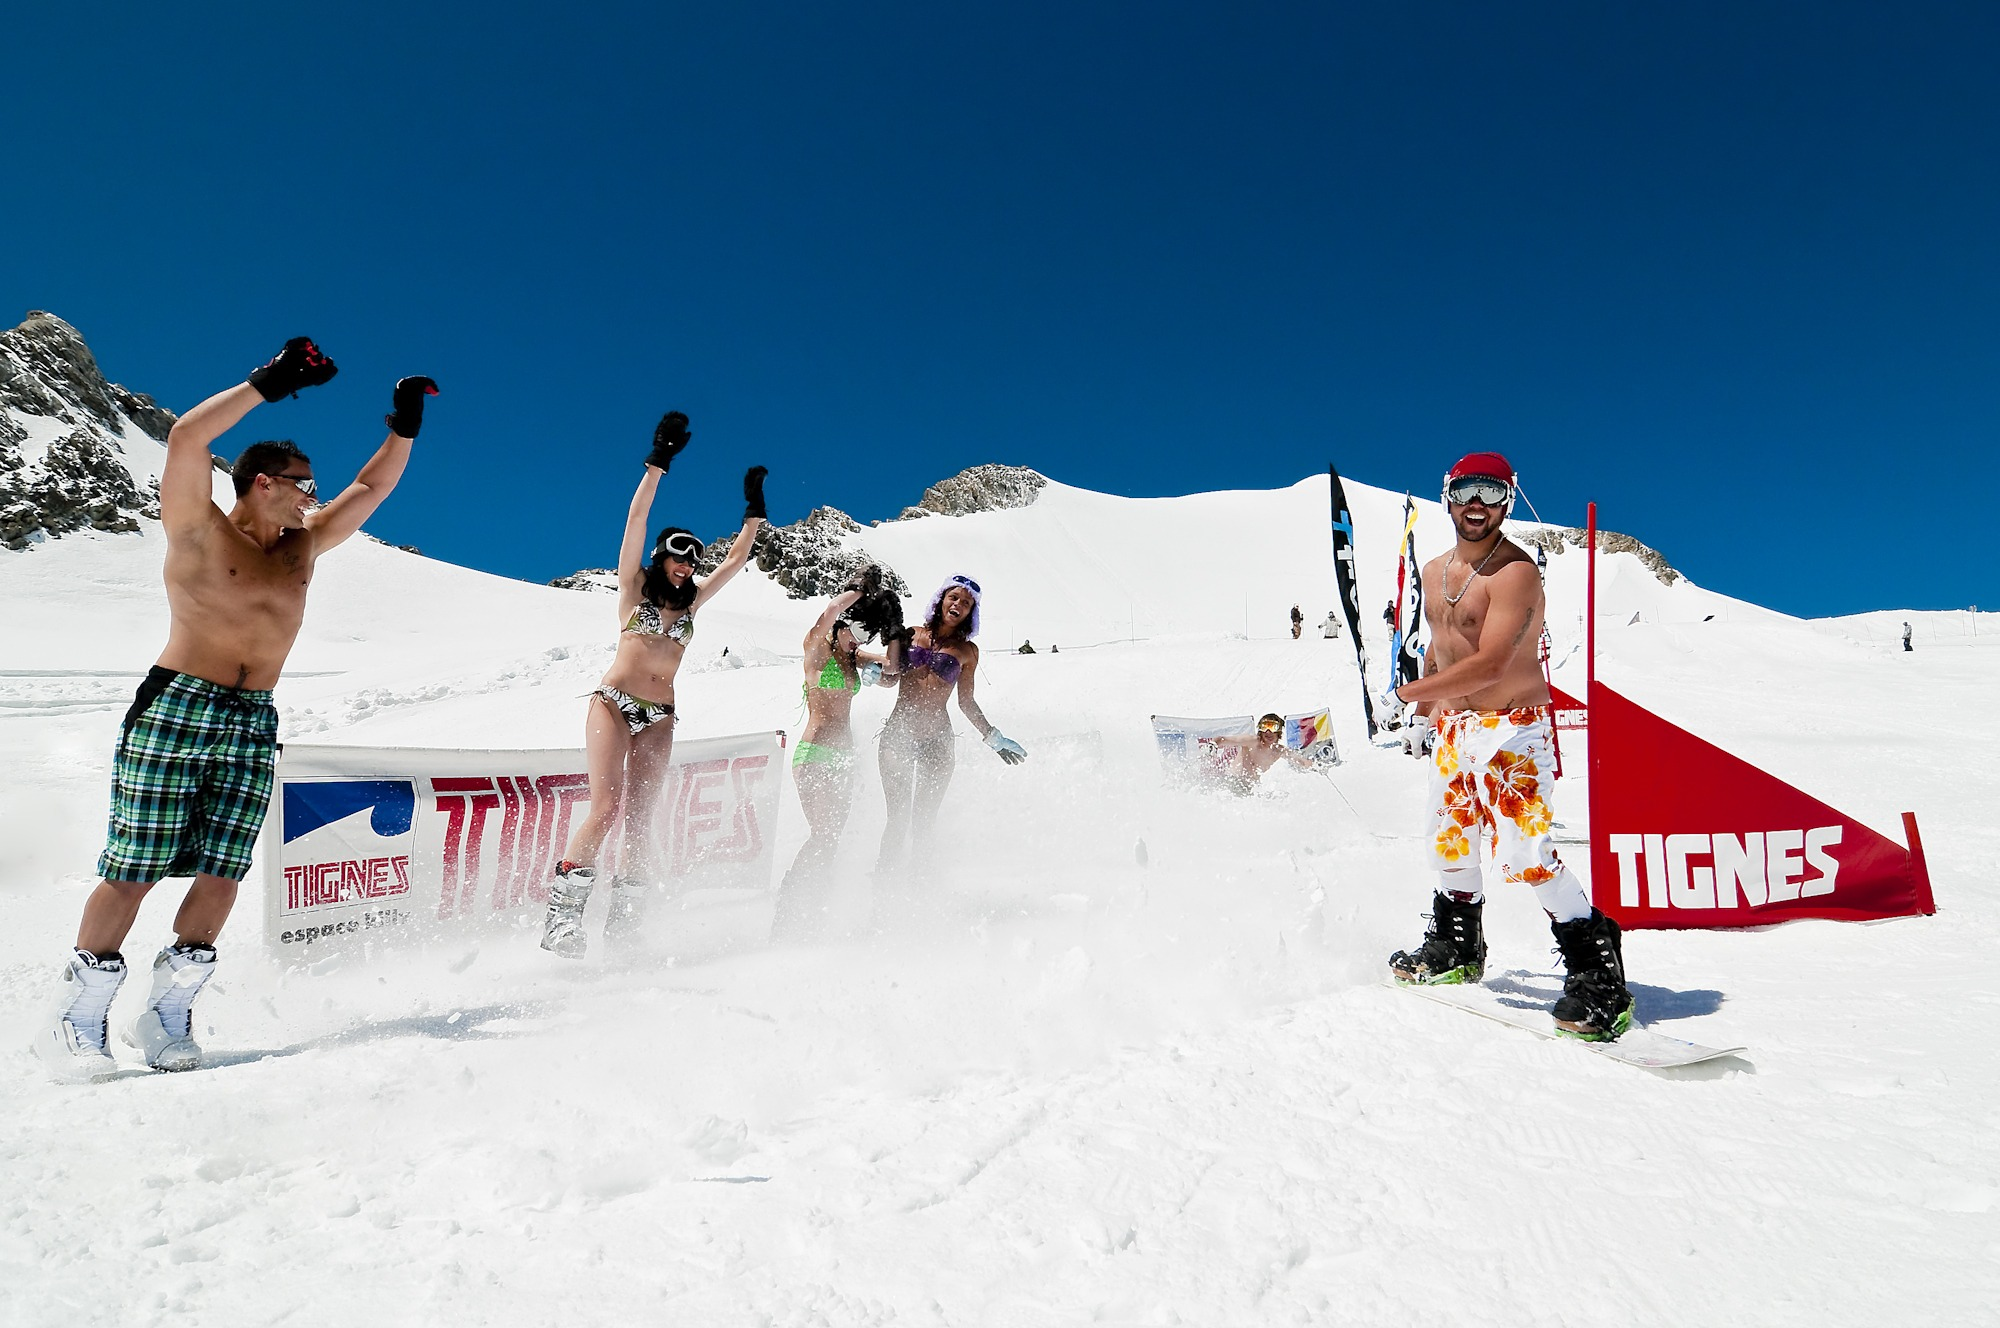 naked-cross-country-skiers-hot-chicks-half-naked